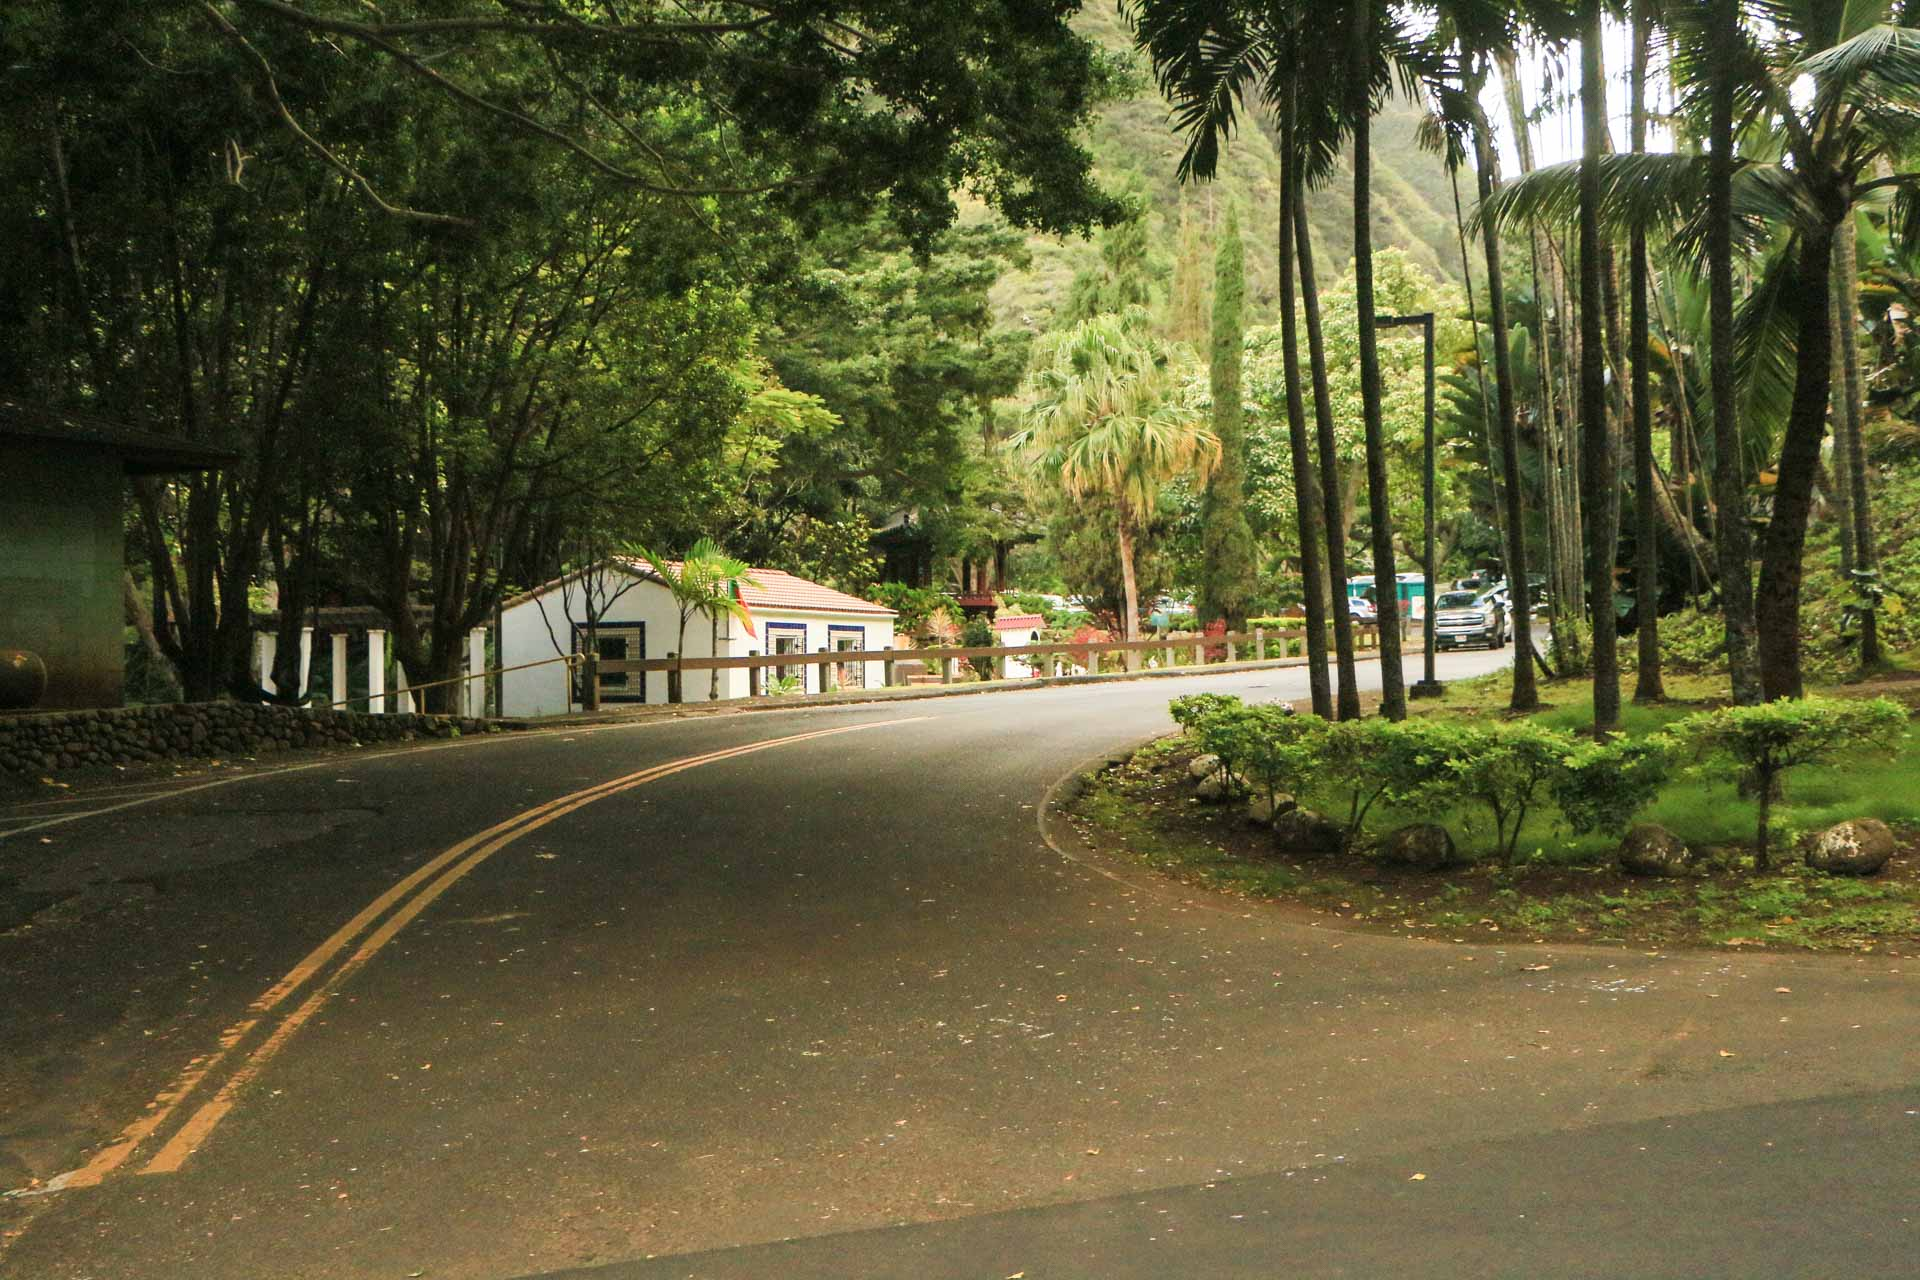 Kepaniwai-road-entrance